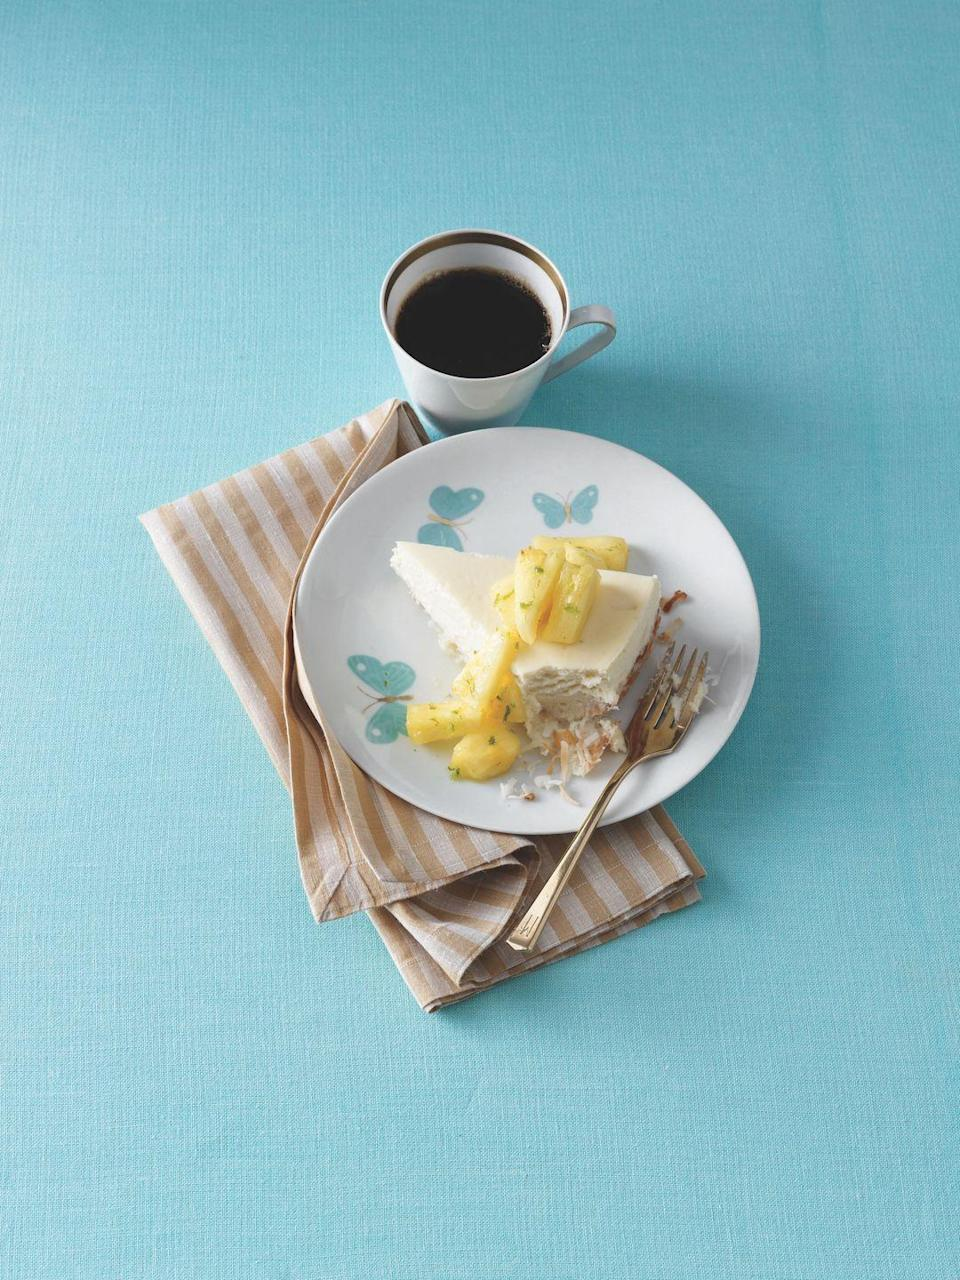 """<p>Pineapple is the perfect pairing to this lush cheesecake, set on a macaroon crust made of coconut, egg whites, and sugar.</p><p><em><a href=""""https://www.womansday.com/food-recipes/food-drinks/recipes/a11279/cheesecake-macaroon-crust-recipe-122896/"""" rel=""""nofollow noopener"""" target=""""_blank"""" data-ylk=""""slk:Get the recipe from Woman's Day »"""" class=""""link rapid-noclick-resp"""">Get the recipe from Woman's Day »</a></em></p>"""